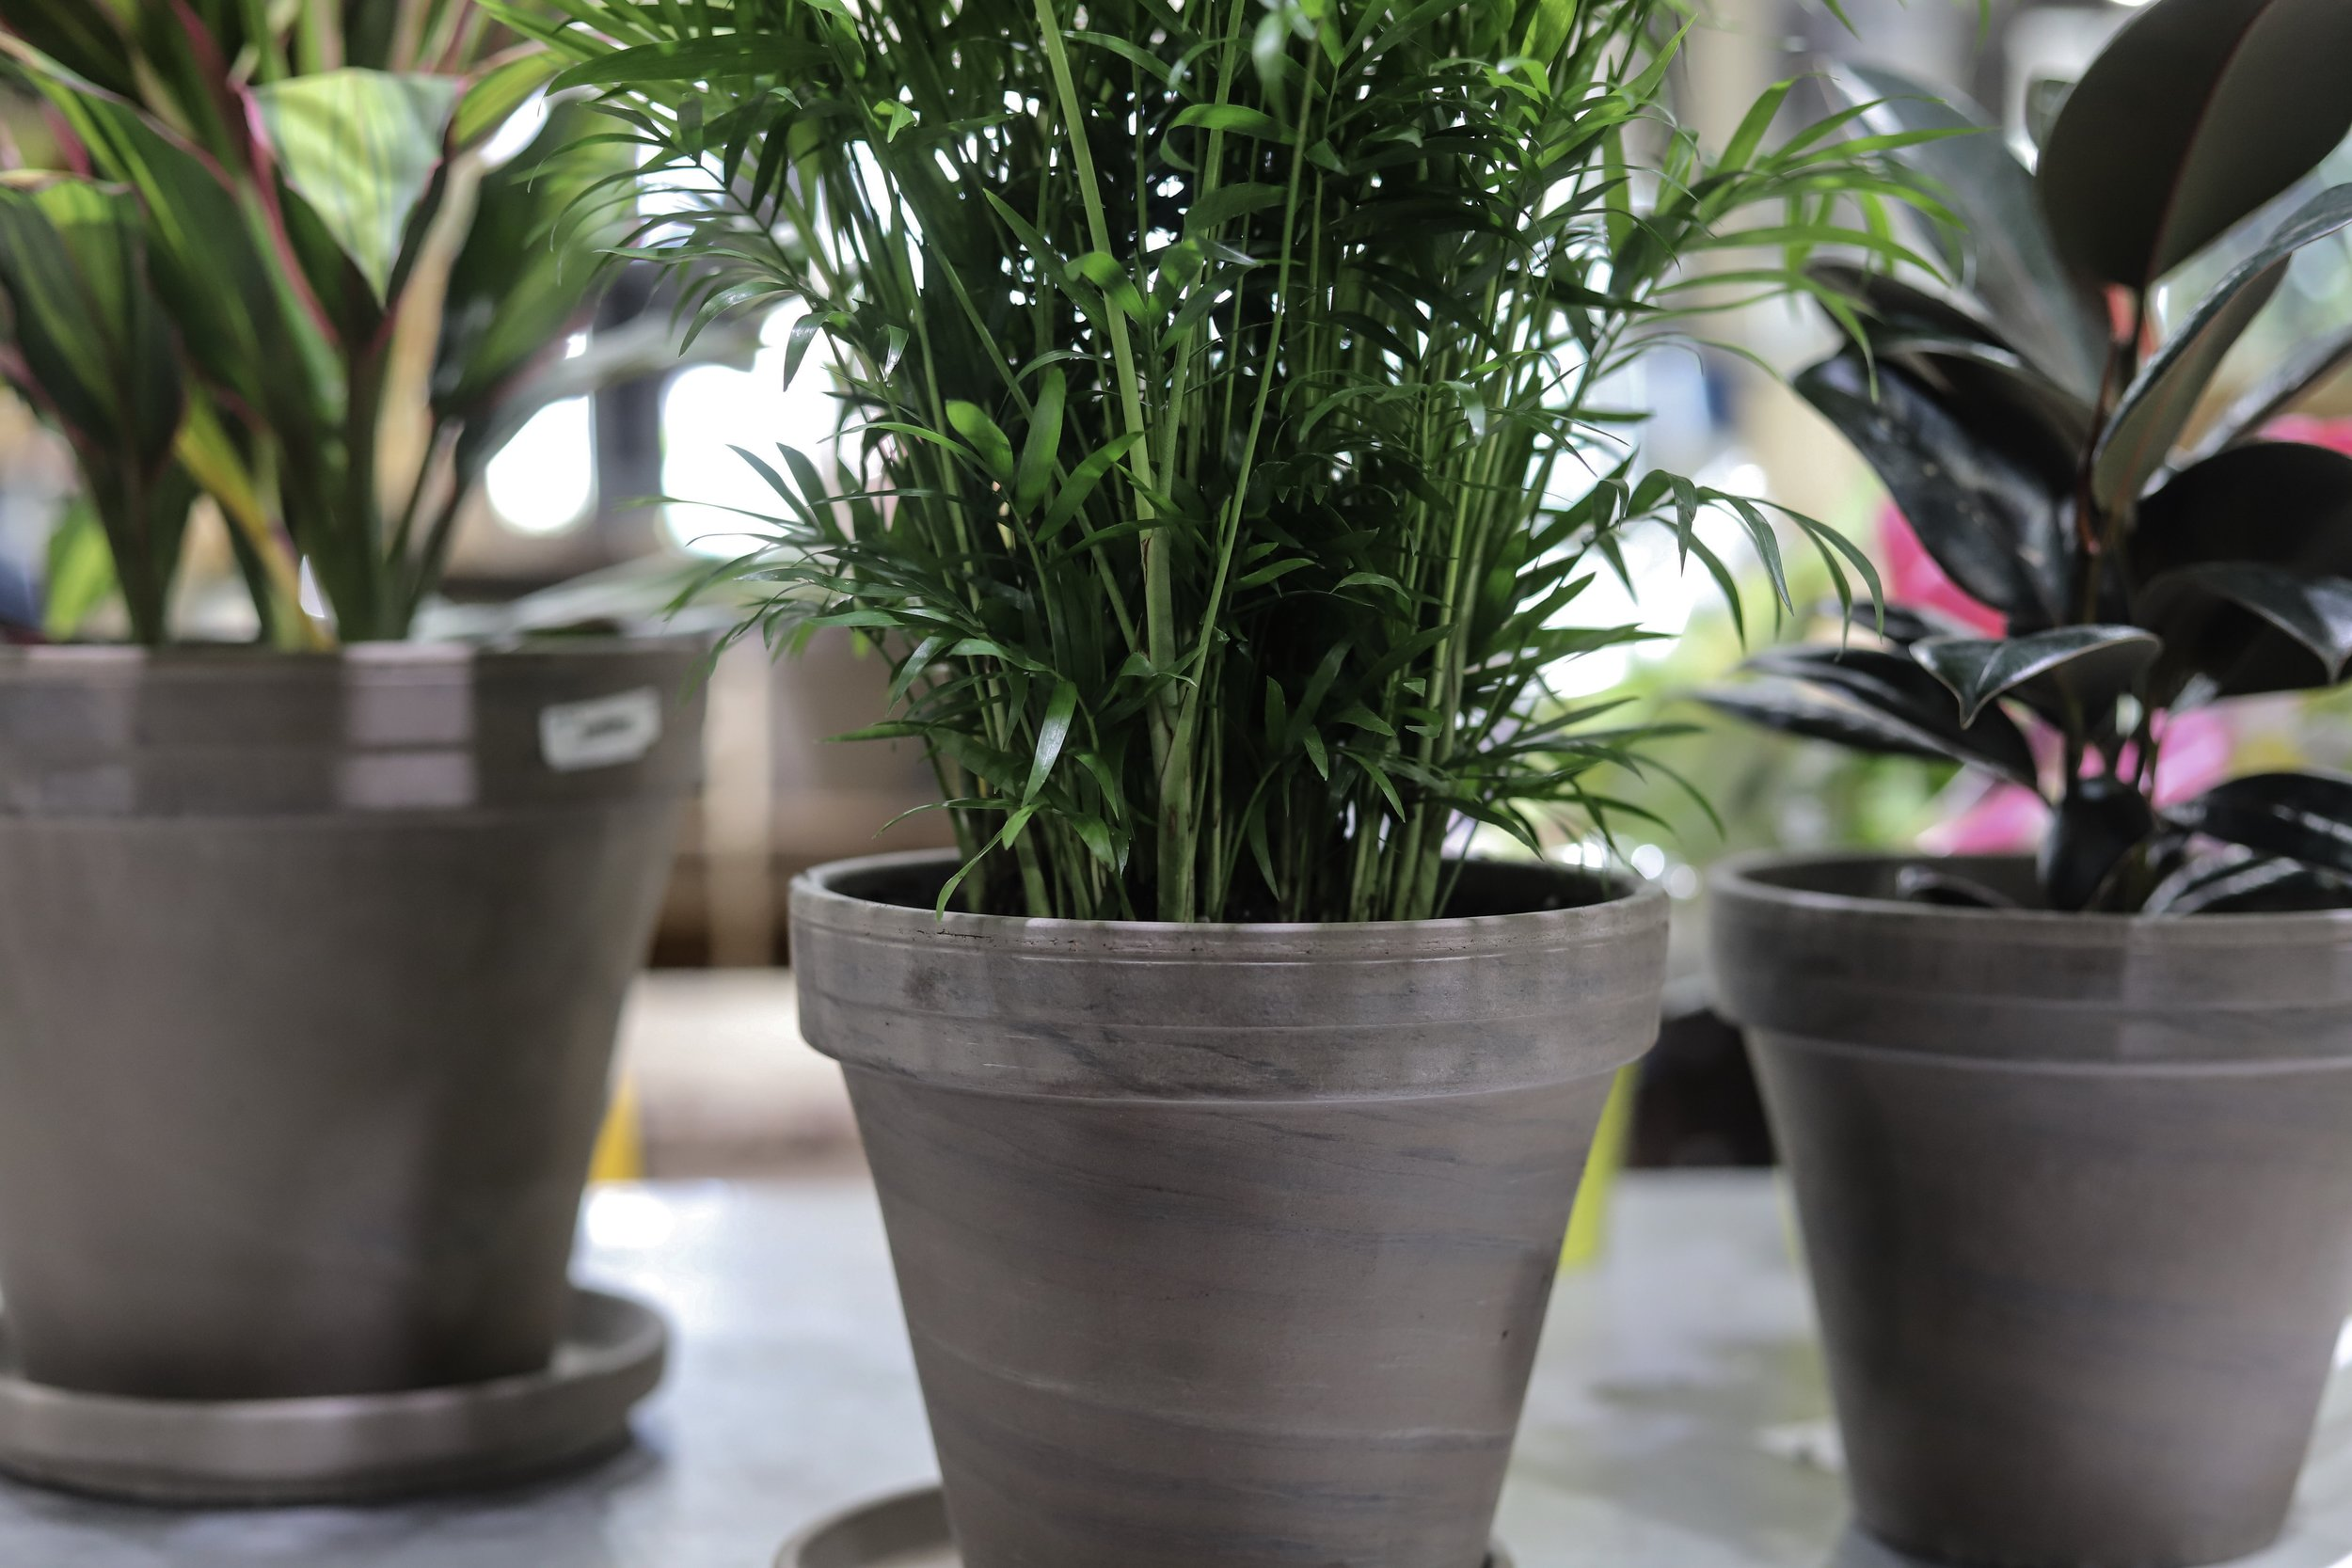 Household Plants and Flowers that aren't Toxic to your Pets, house plants, ruibals dallas, plants of texas, where to get plants in dallas, madewell jeans, safe plants, nontoxic